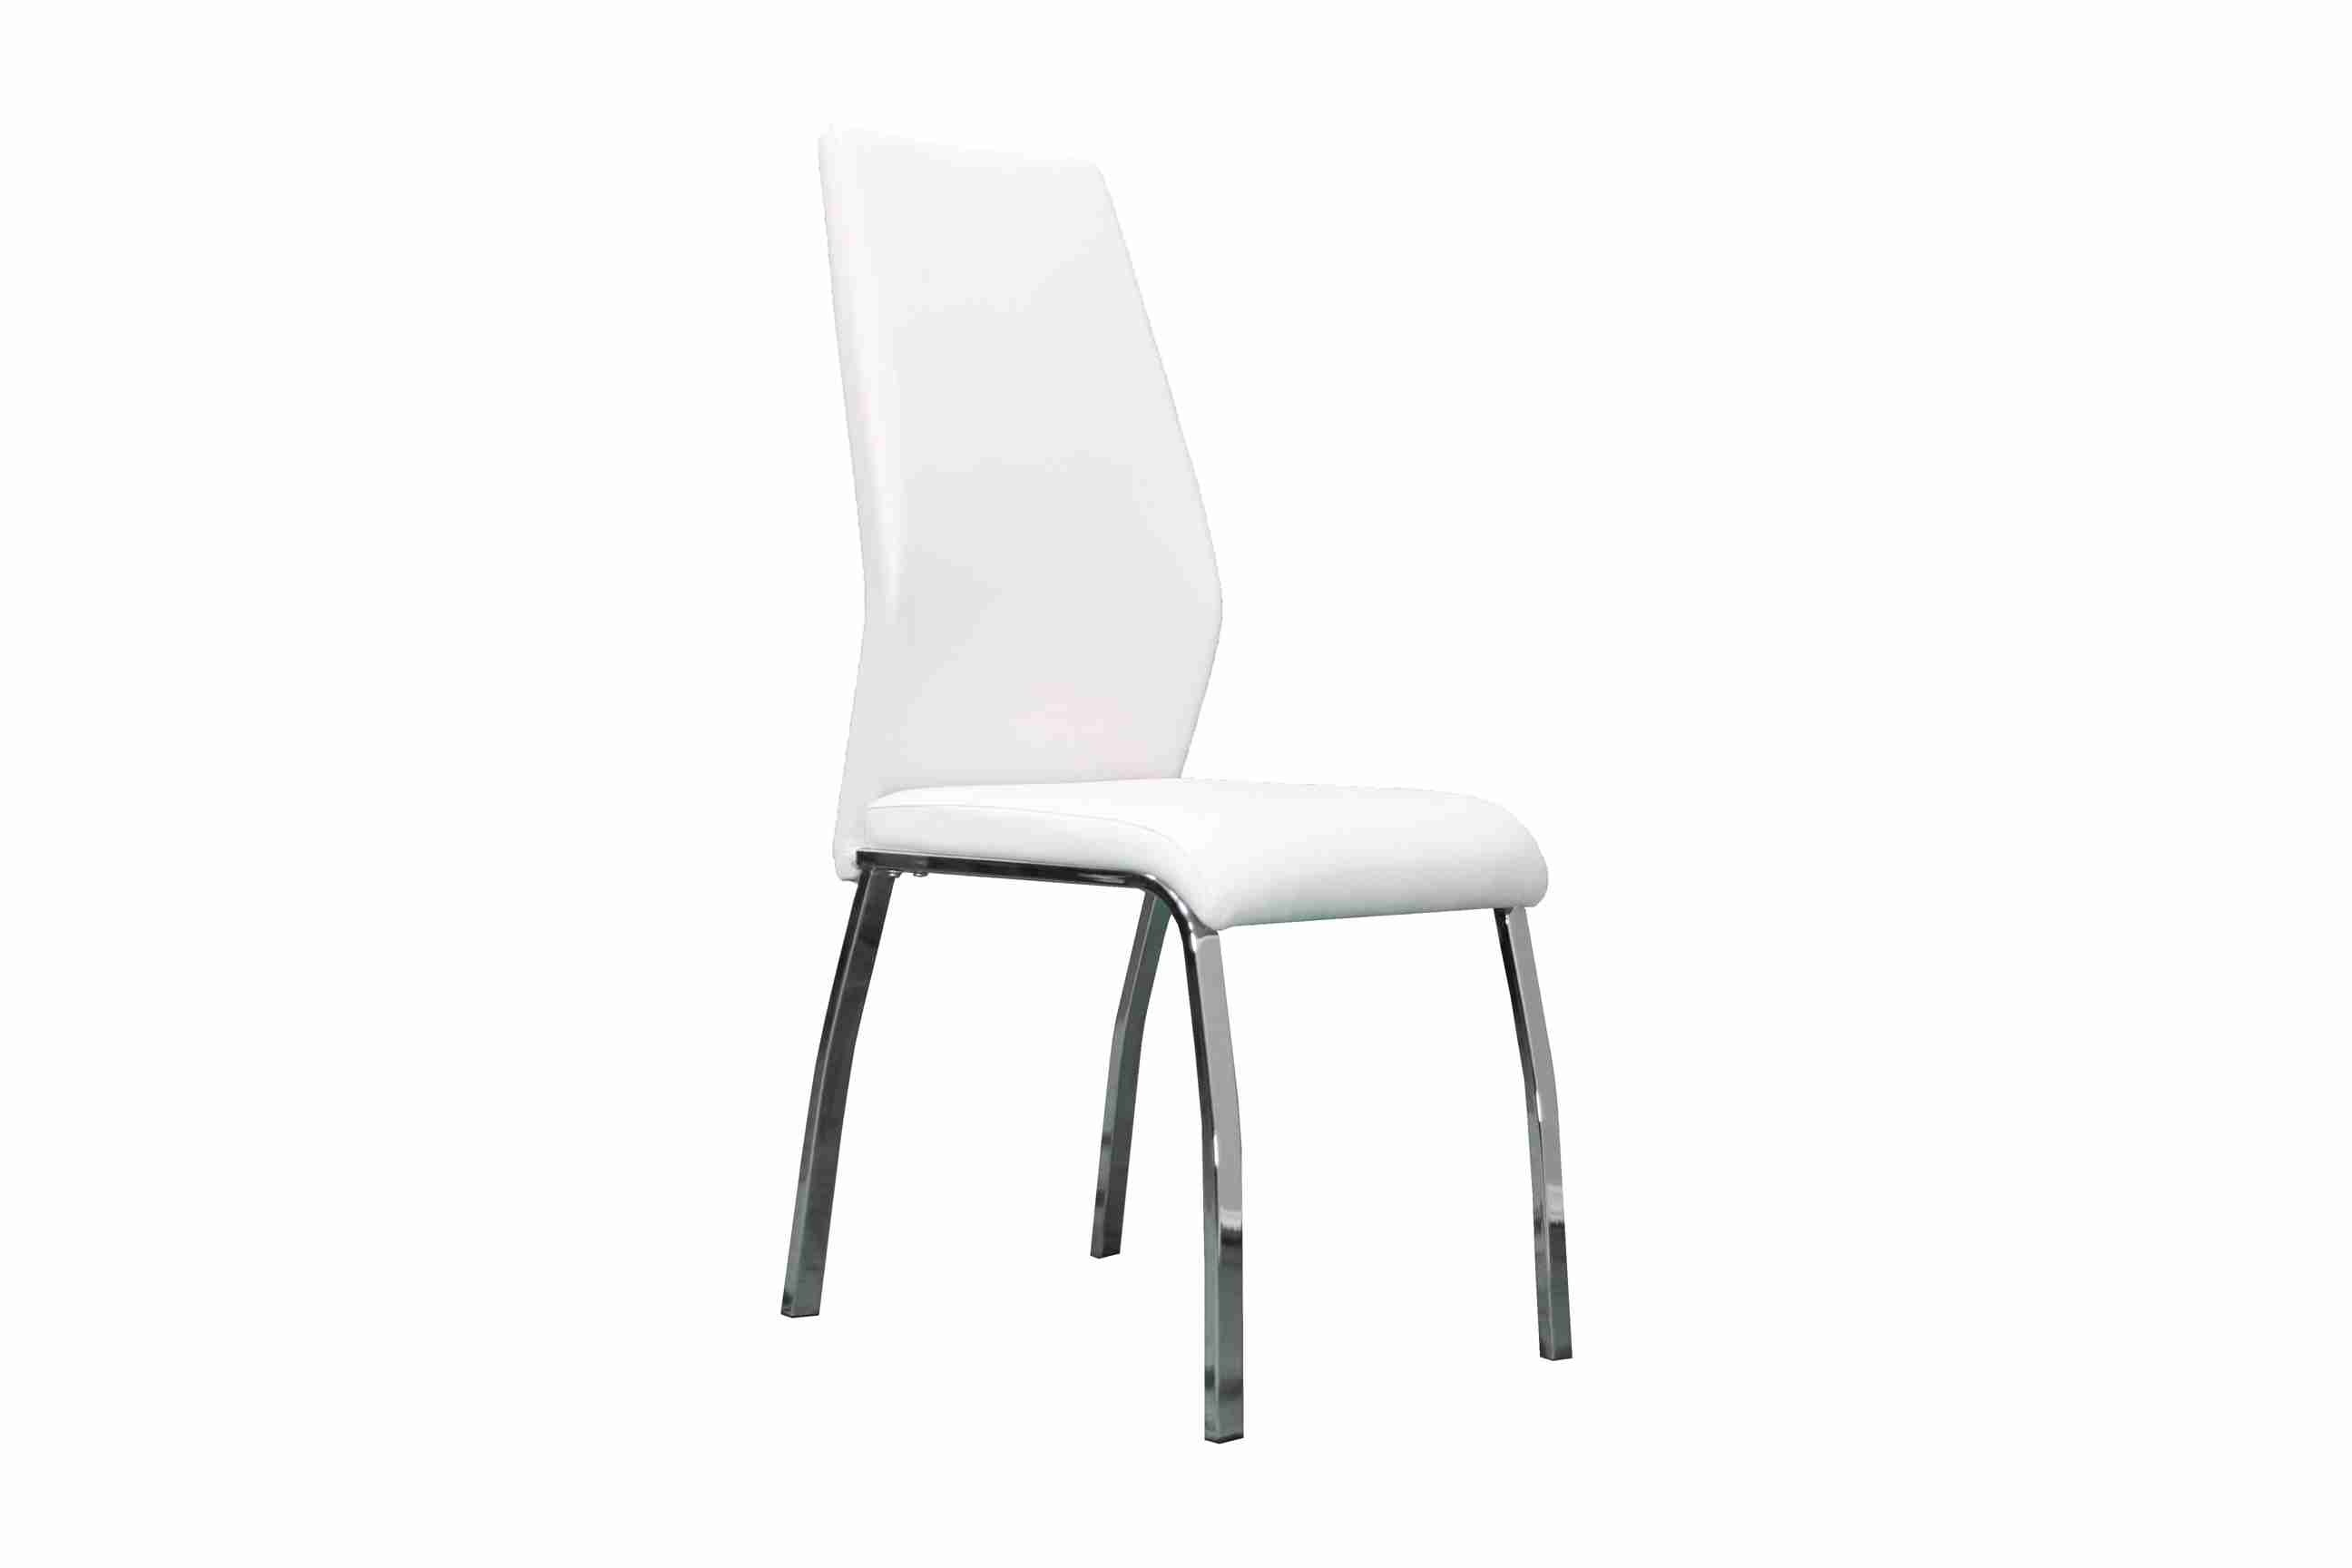 Side Chair PU Leather in White (Set of 2) - UH-983-WH